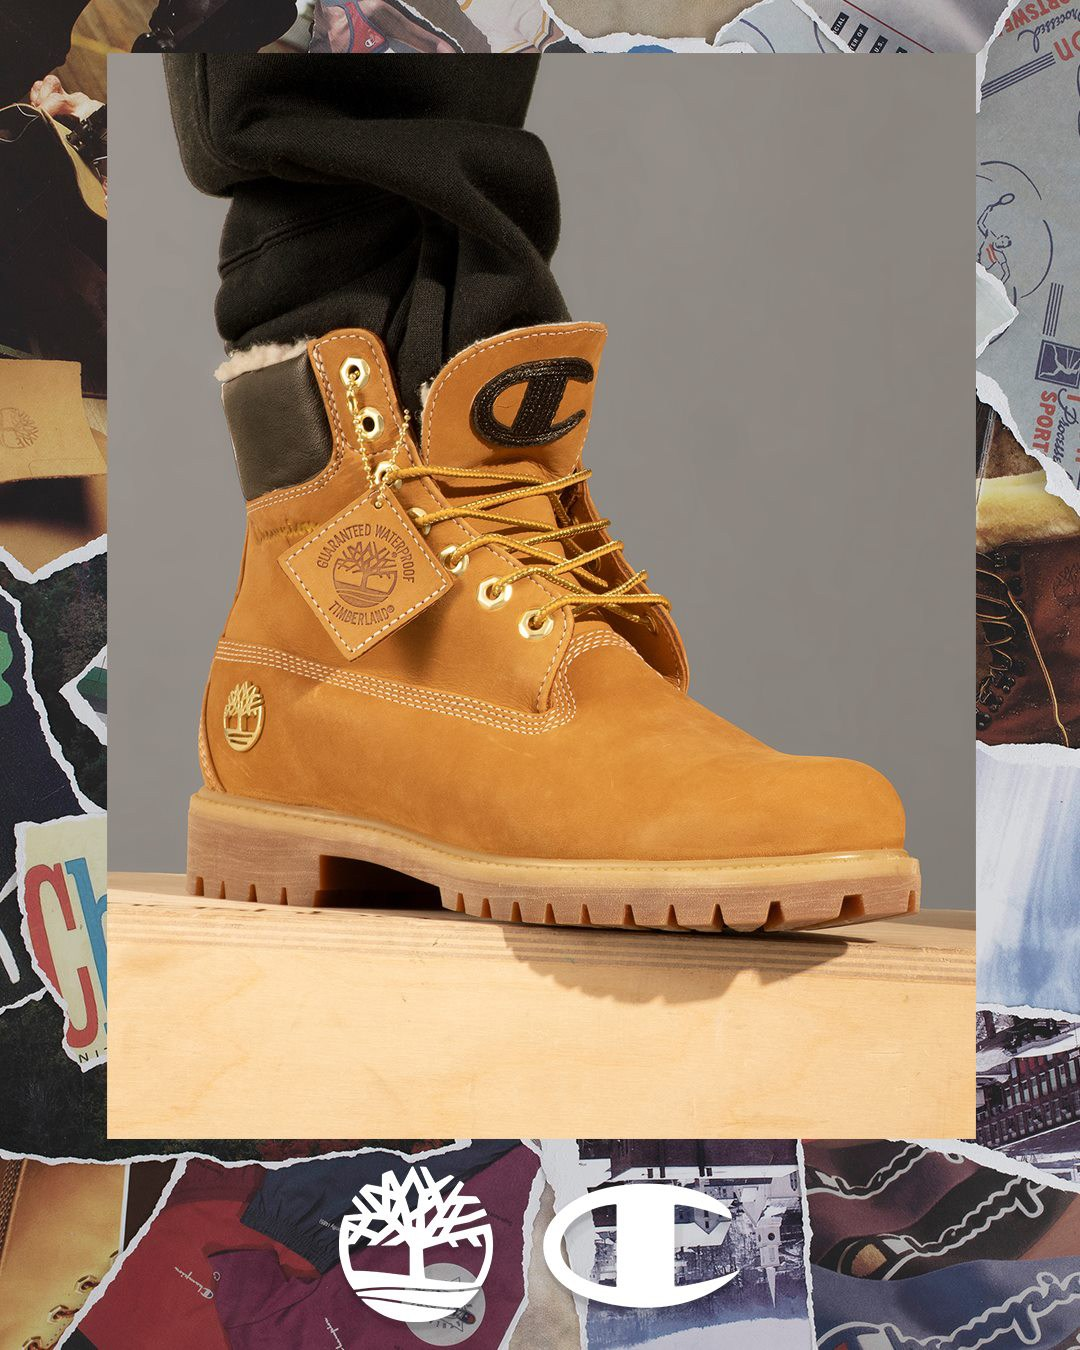 BLAIZED UK The Drops - Timberland & Champion Join to